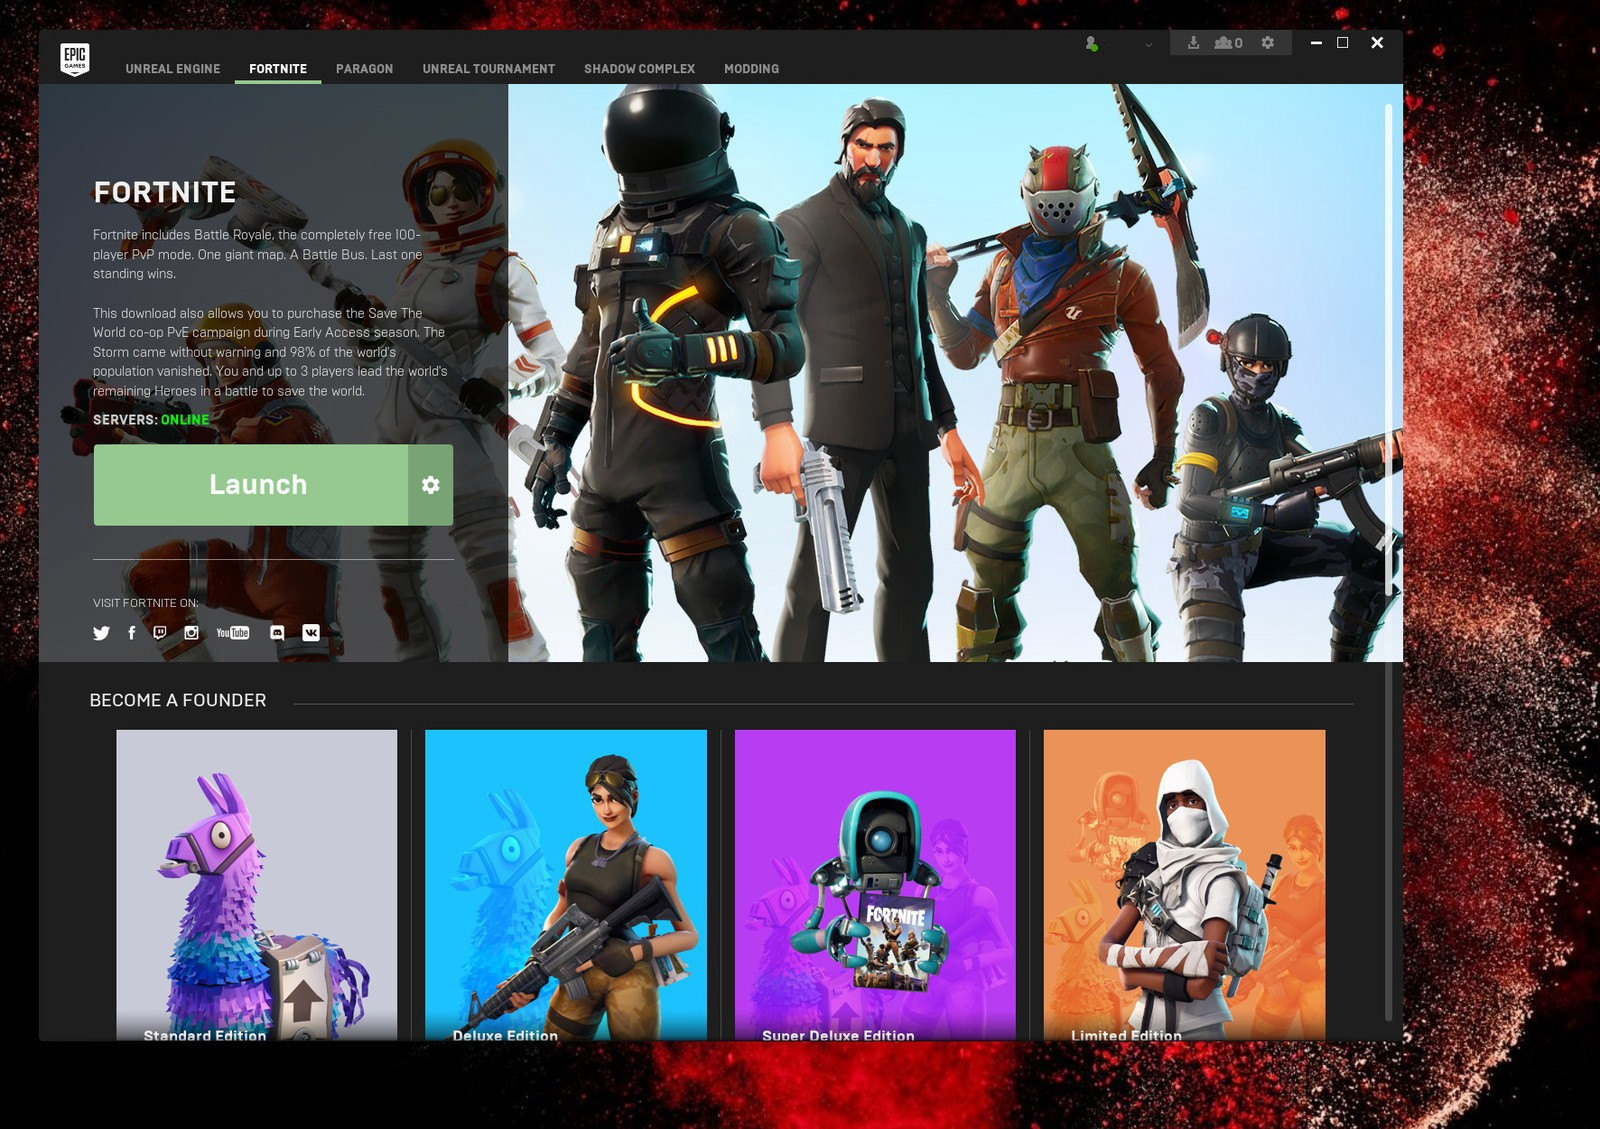 Hacking Fortnite This Hack Will Not Jeopardize Your Account By Cranky Crypto Medium